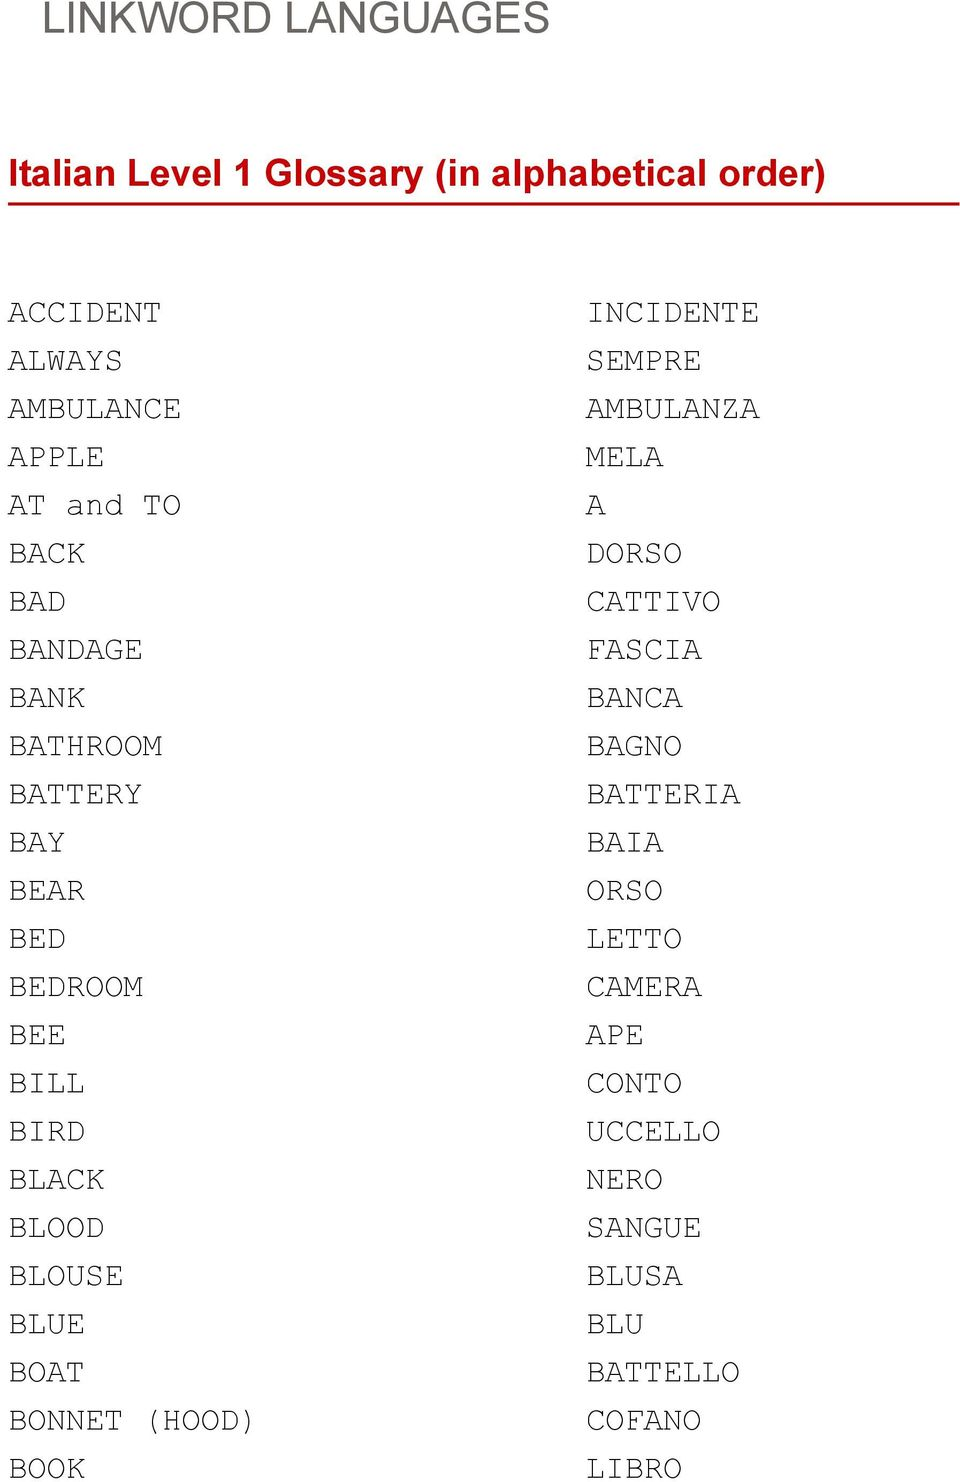 LINKWORD LANGUAGES Italian Level 1 Glossary in alphabetical order AT and TO  PDF